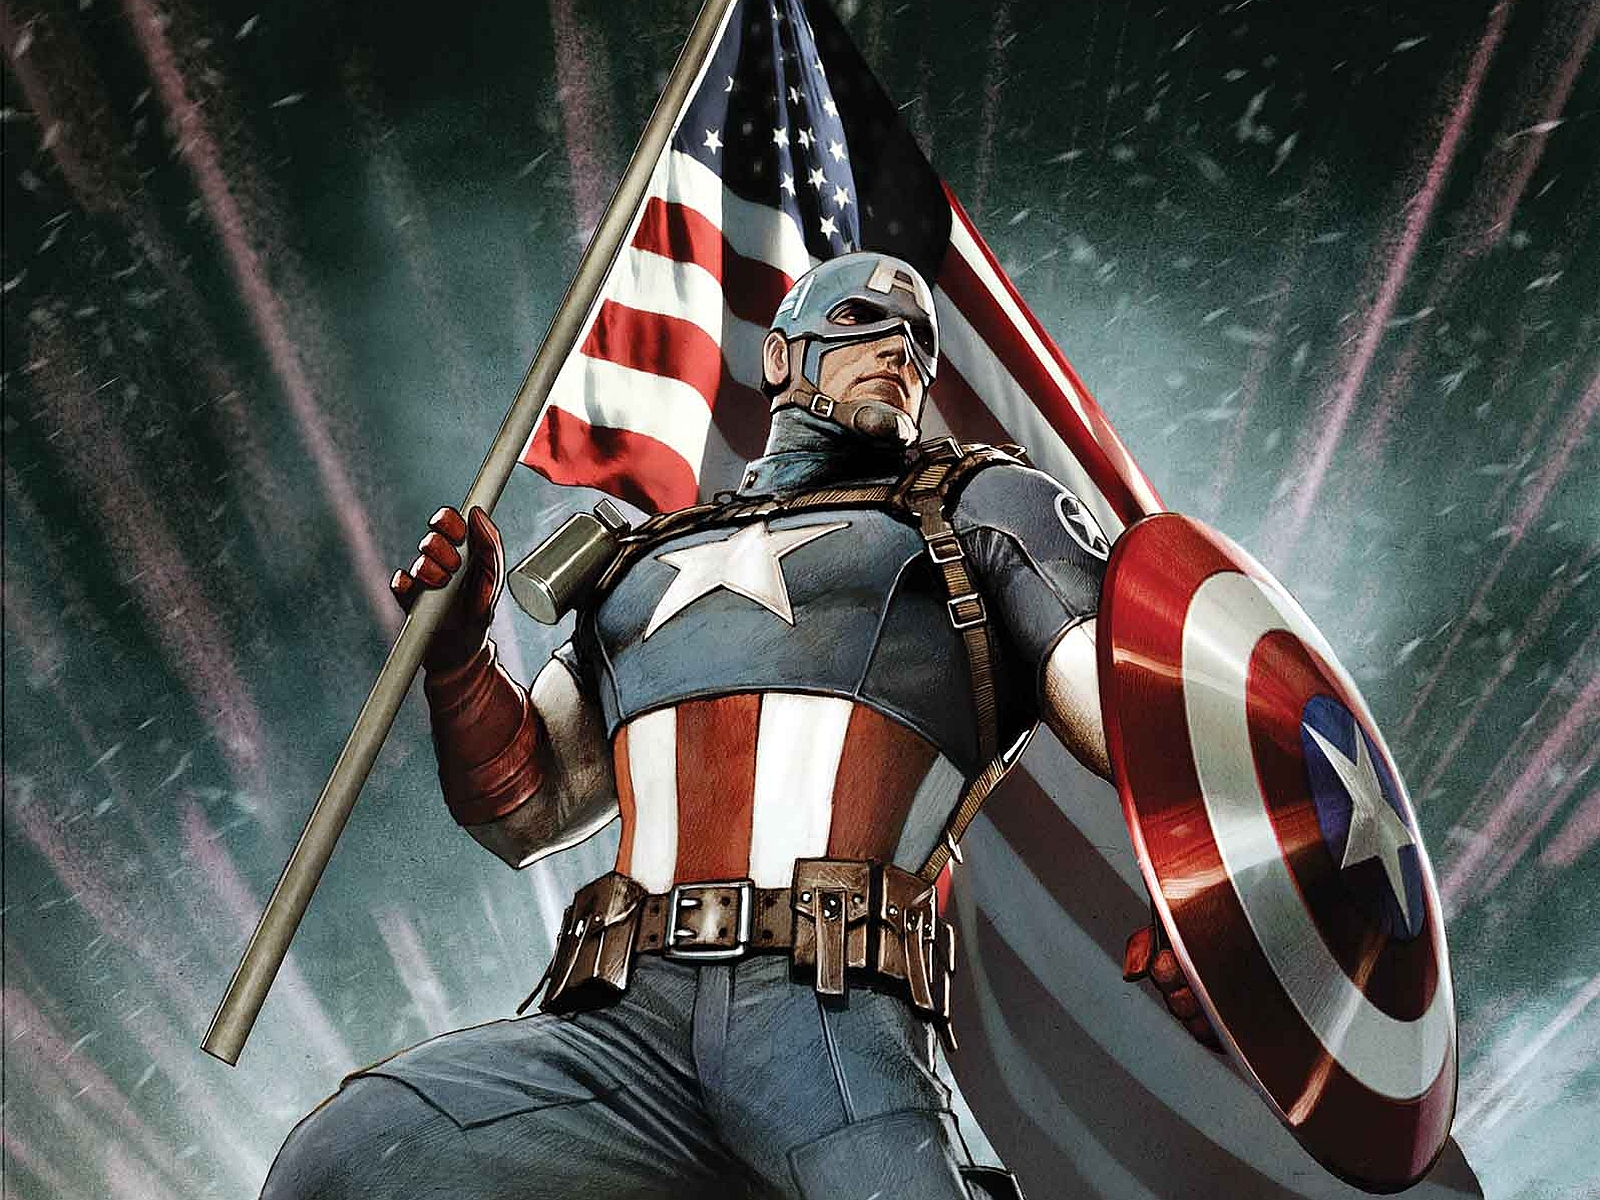 Captain America Computer Wallpapers Desktop Backgrounds 1600x1200 1600x1200